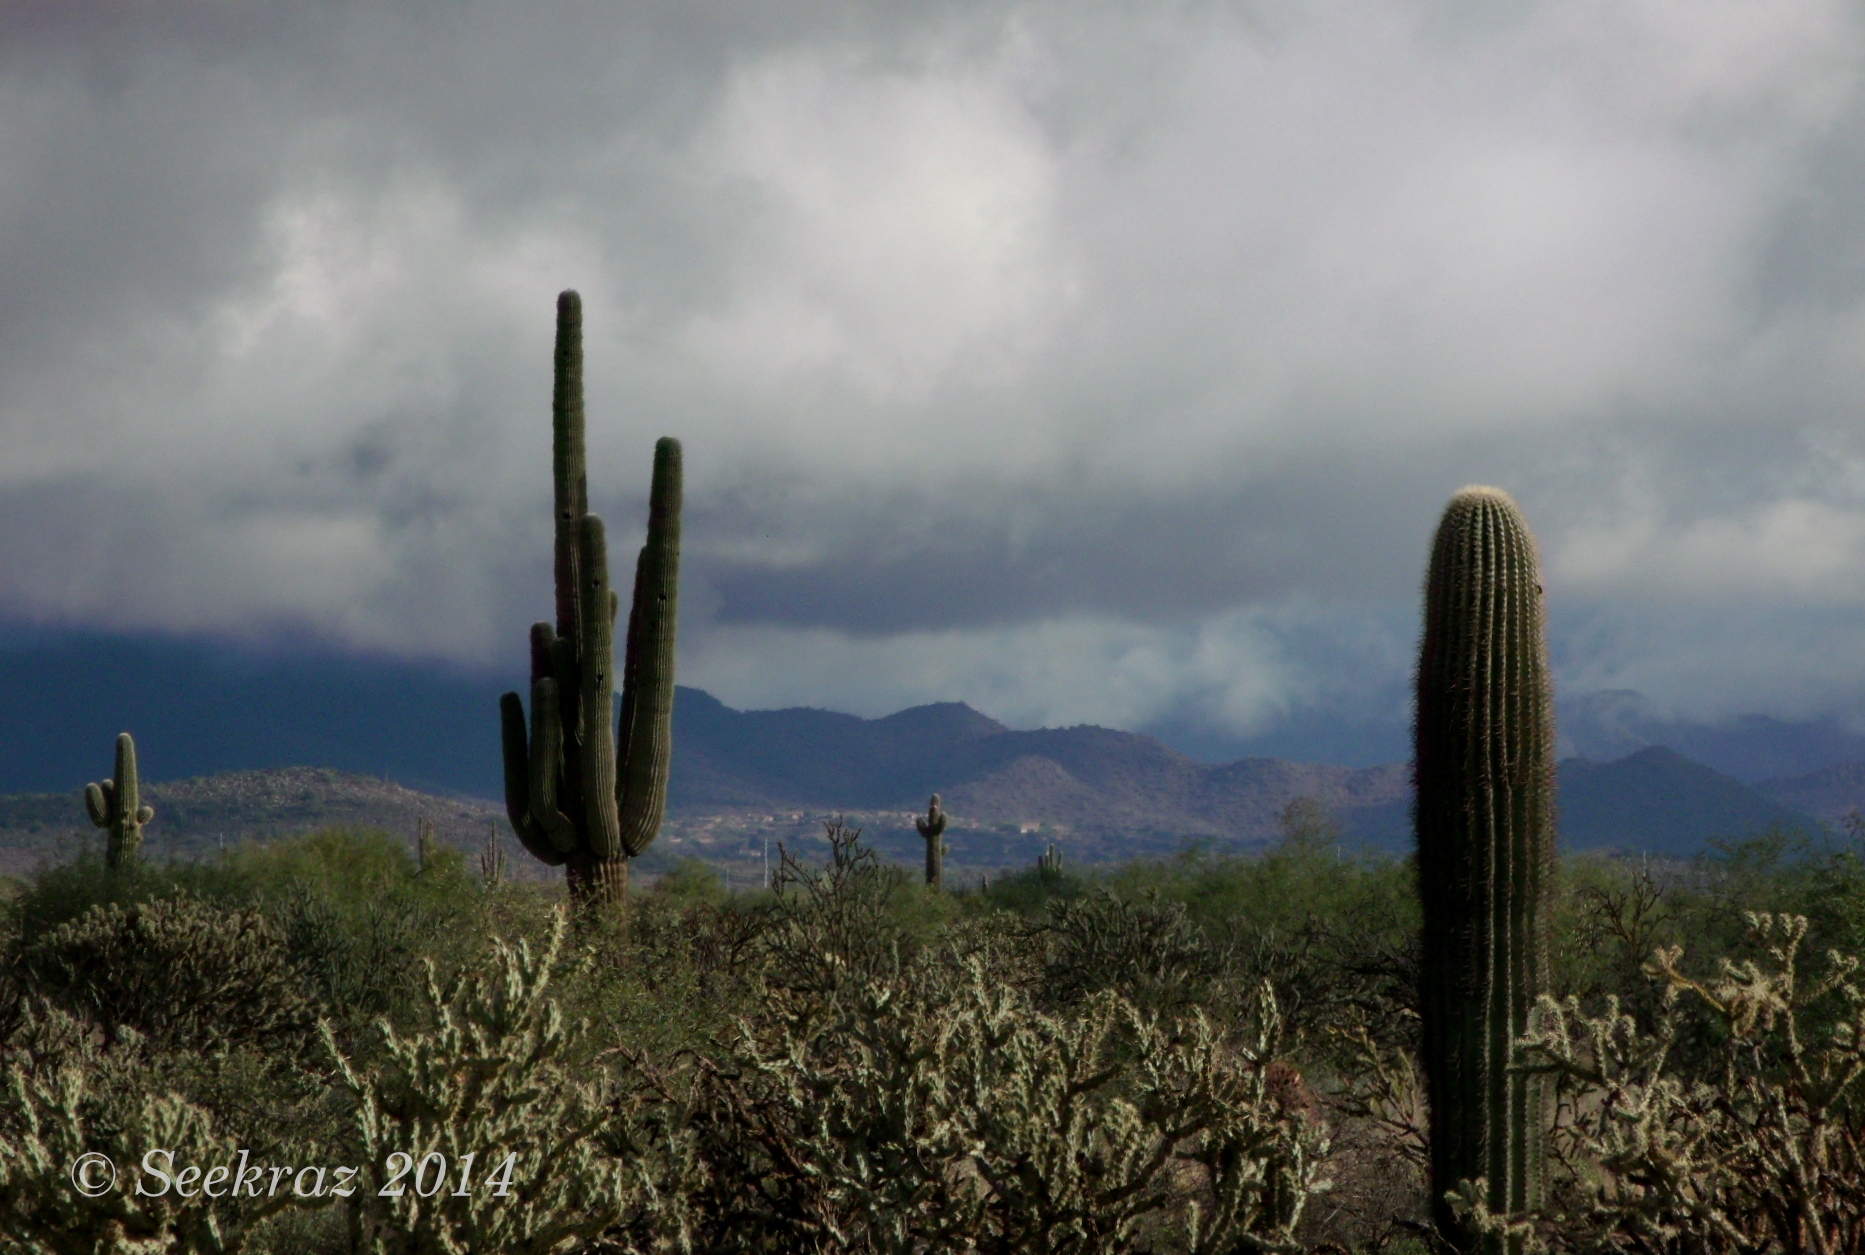 romantic places cactus clouds - photo #6